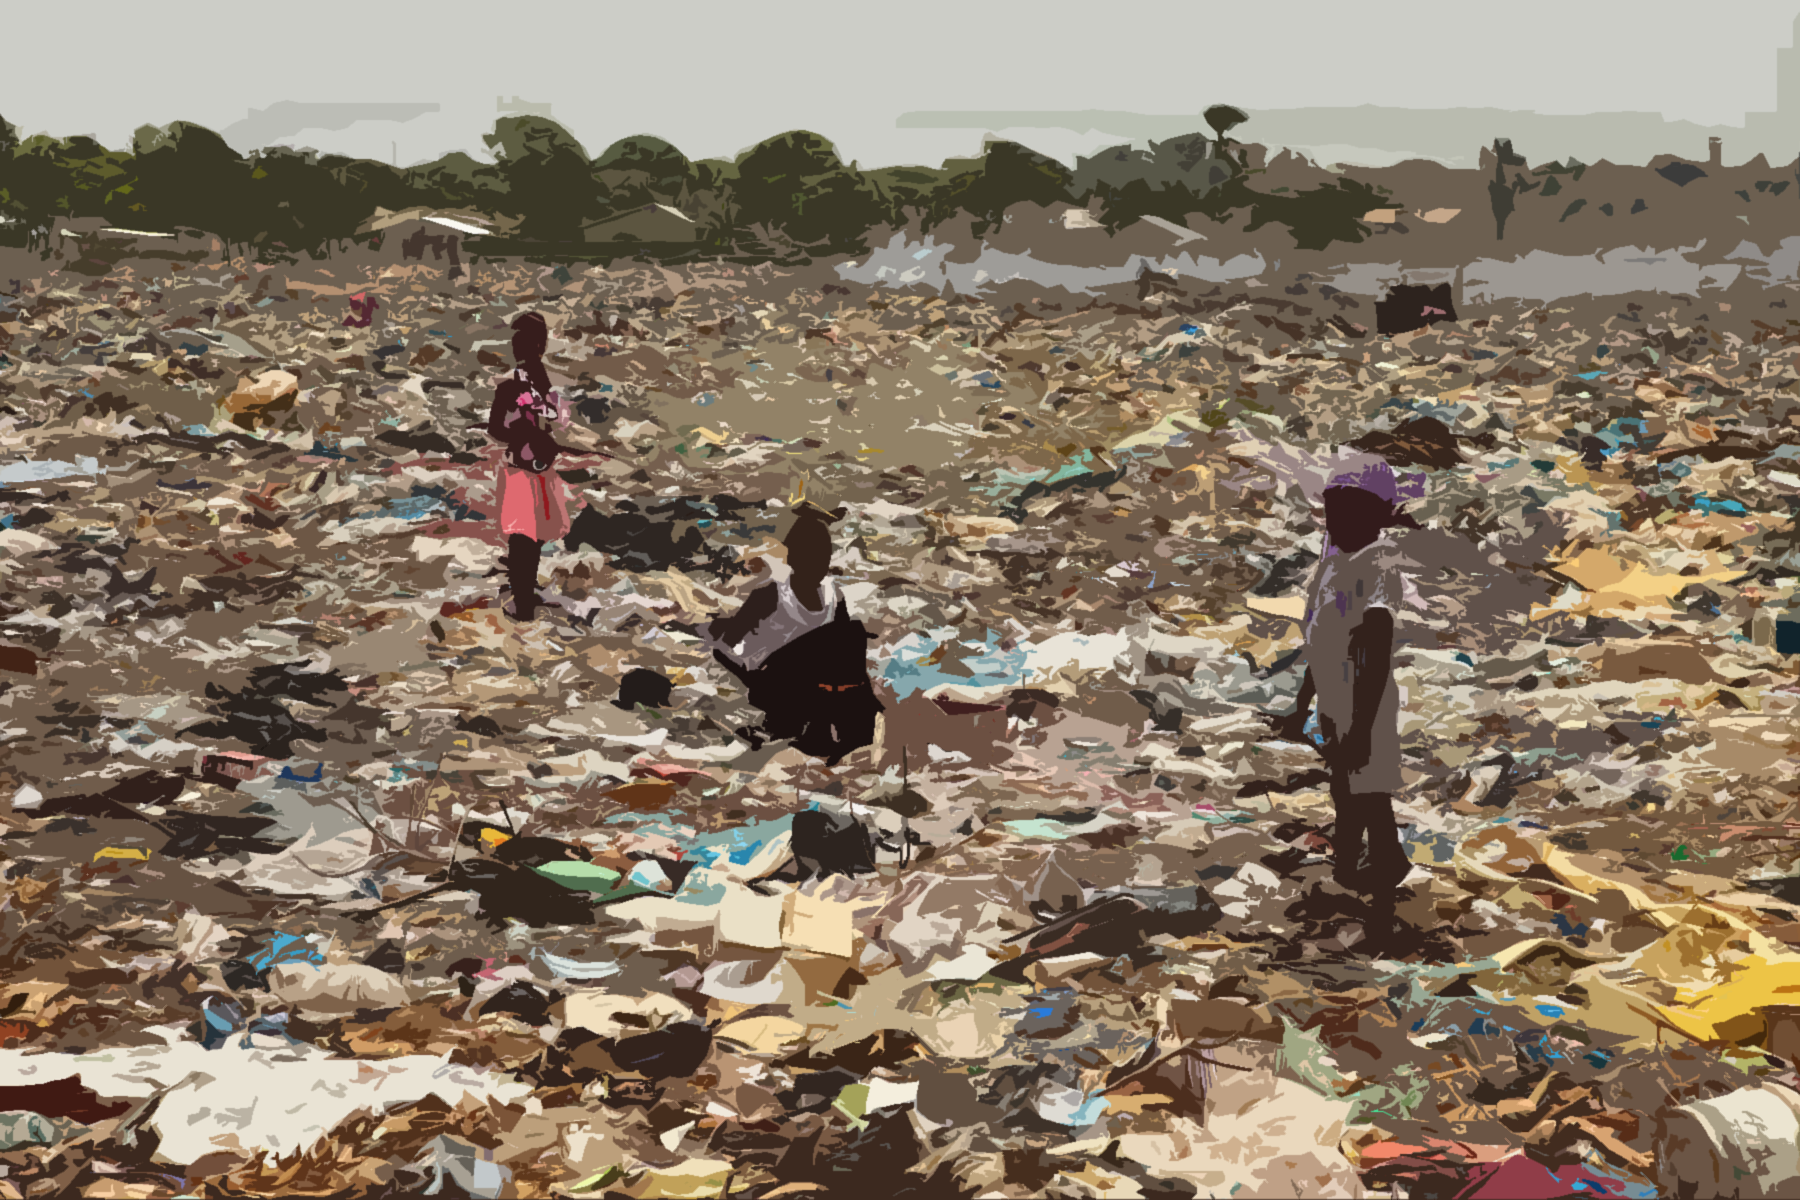 National Project Launch Sustainable Waste Management for the Reduction of Child Rights Violations at Bakoteh Dumpsite